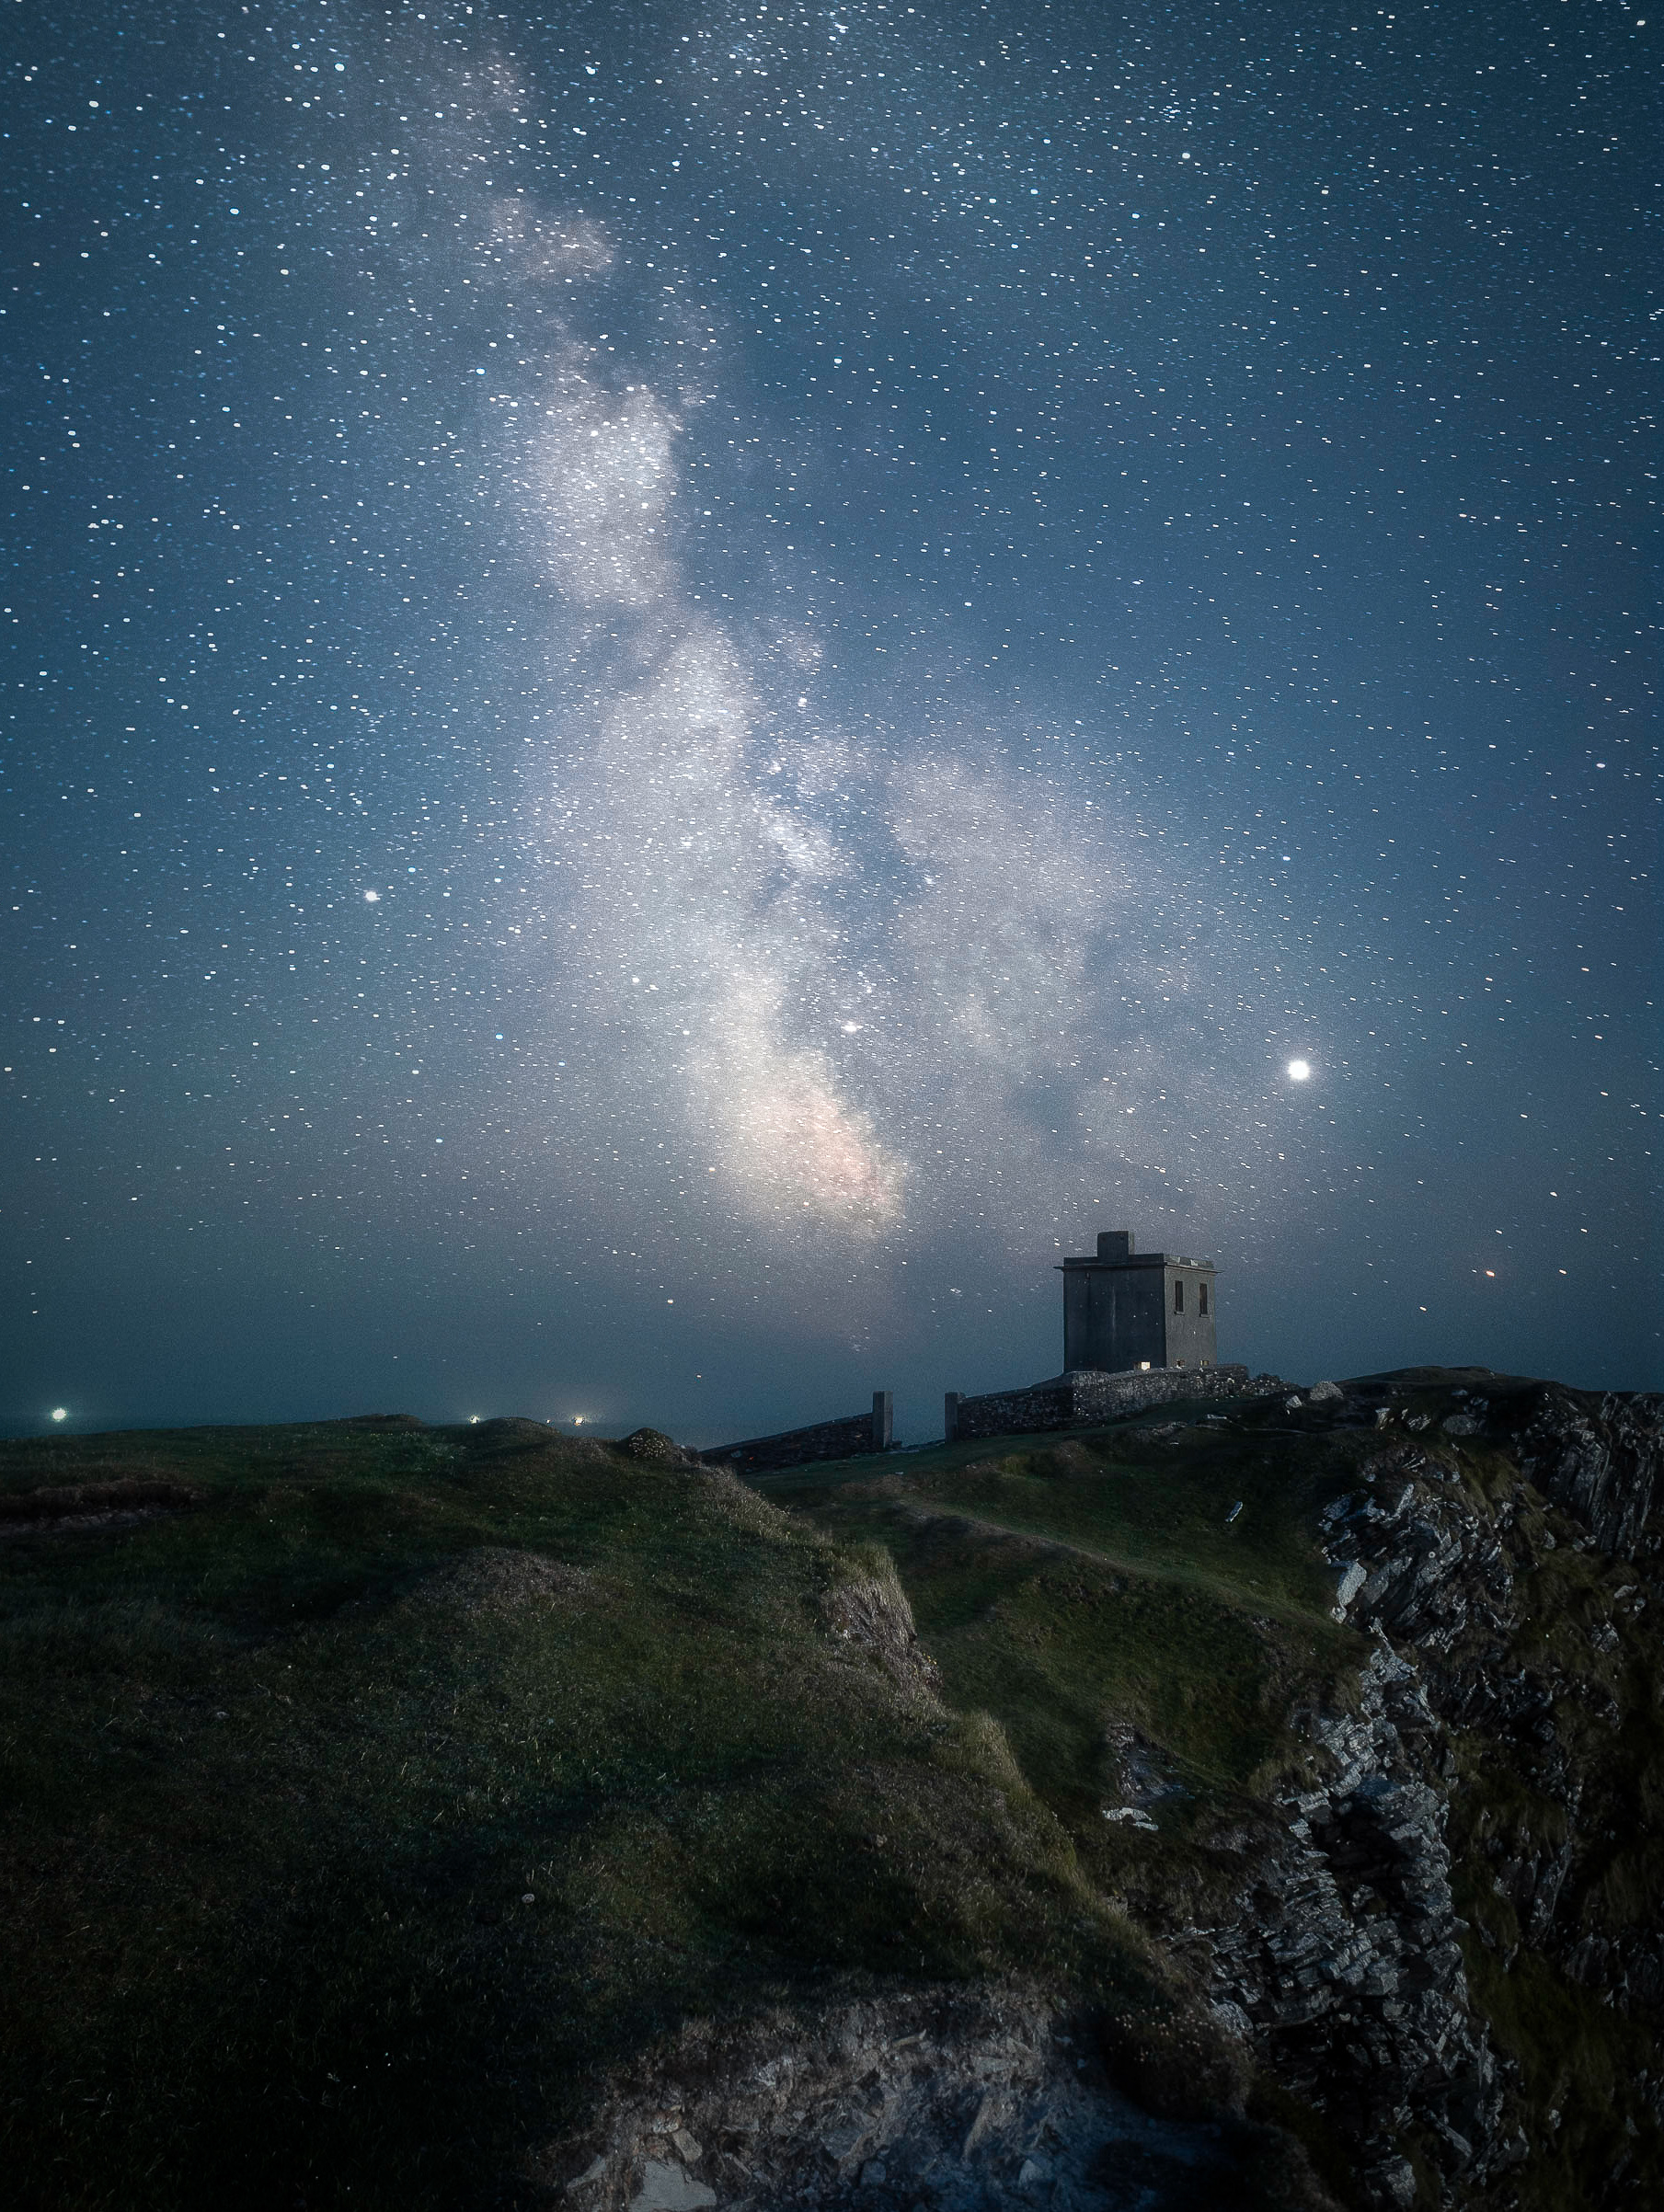 Bray Head located on Valentia Island, Co Kerry. This was taken during July where it never gets fully dark in Ireland so I had some lovely blue hour light on my foreground, taken at 11:15pm. The Milky Way rose at approx 1am.